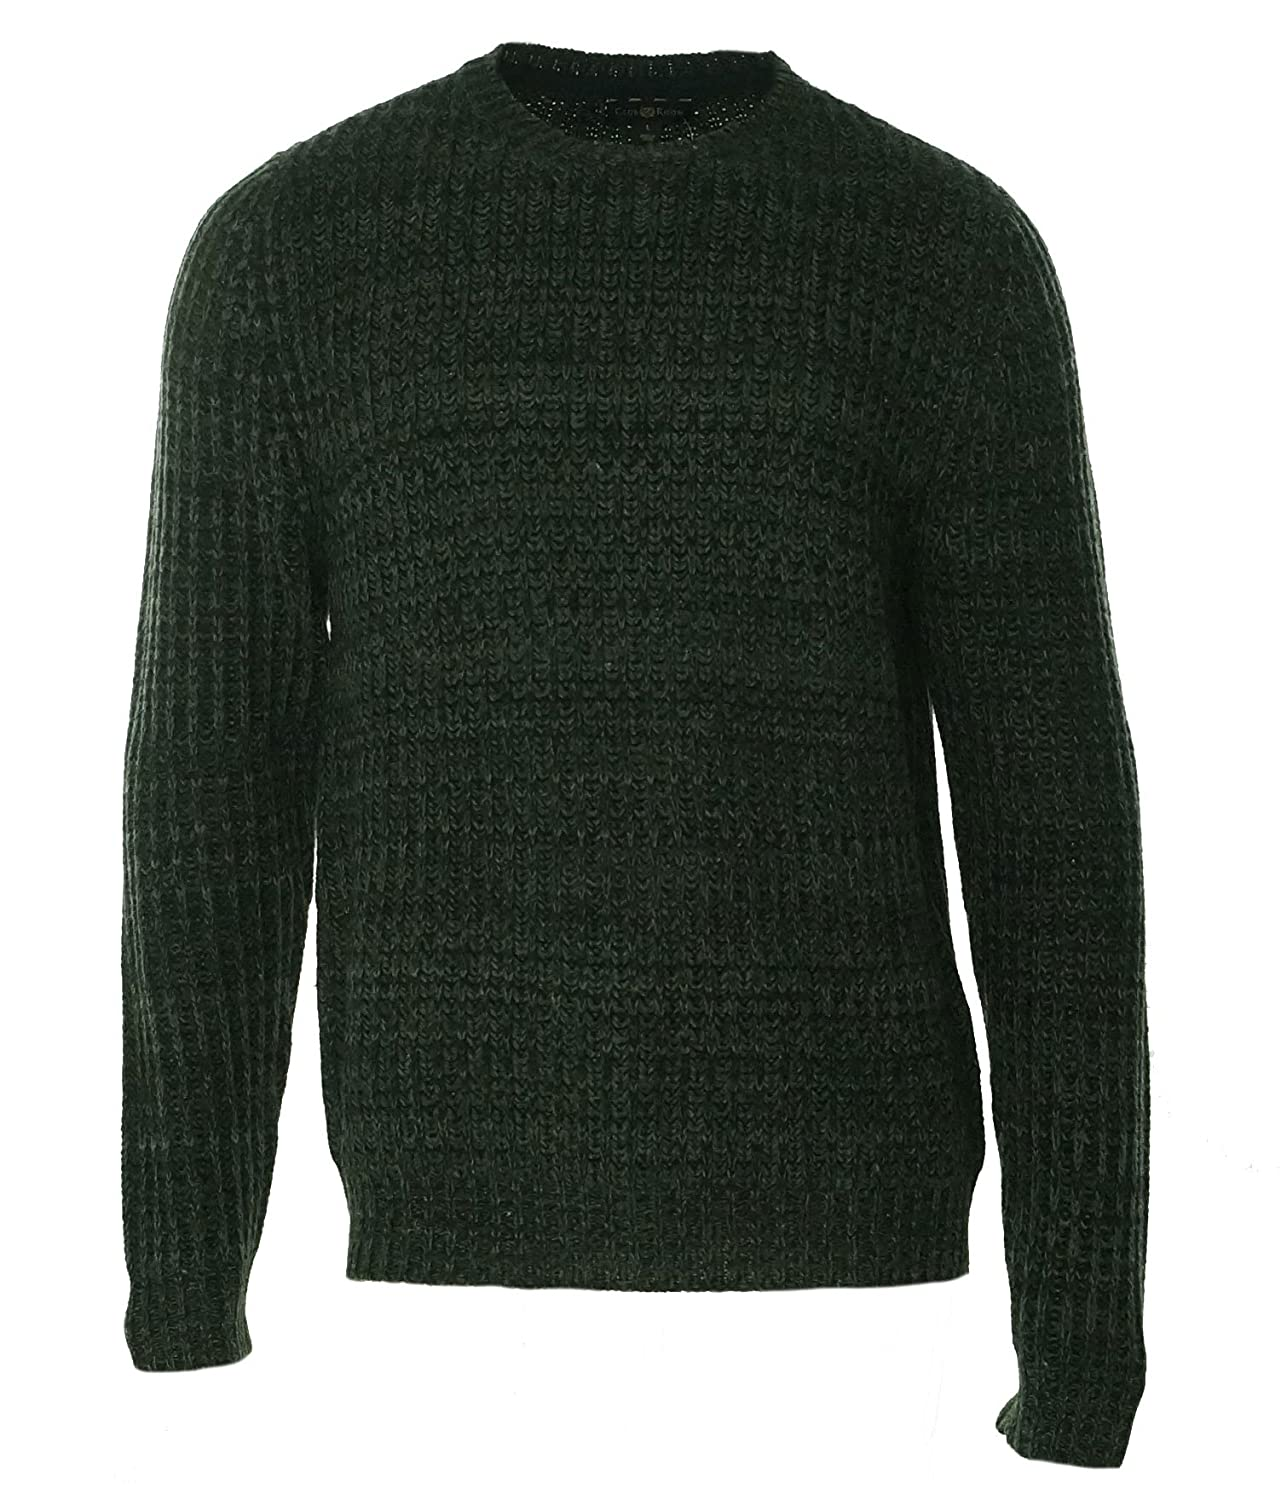 Cheap Club Room Mens Marled Textured Pullover Sweater